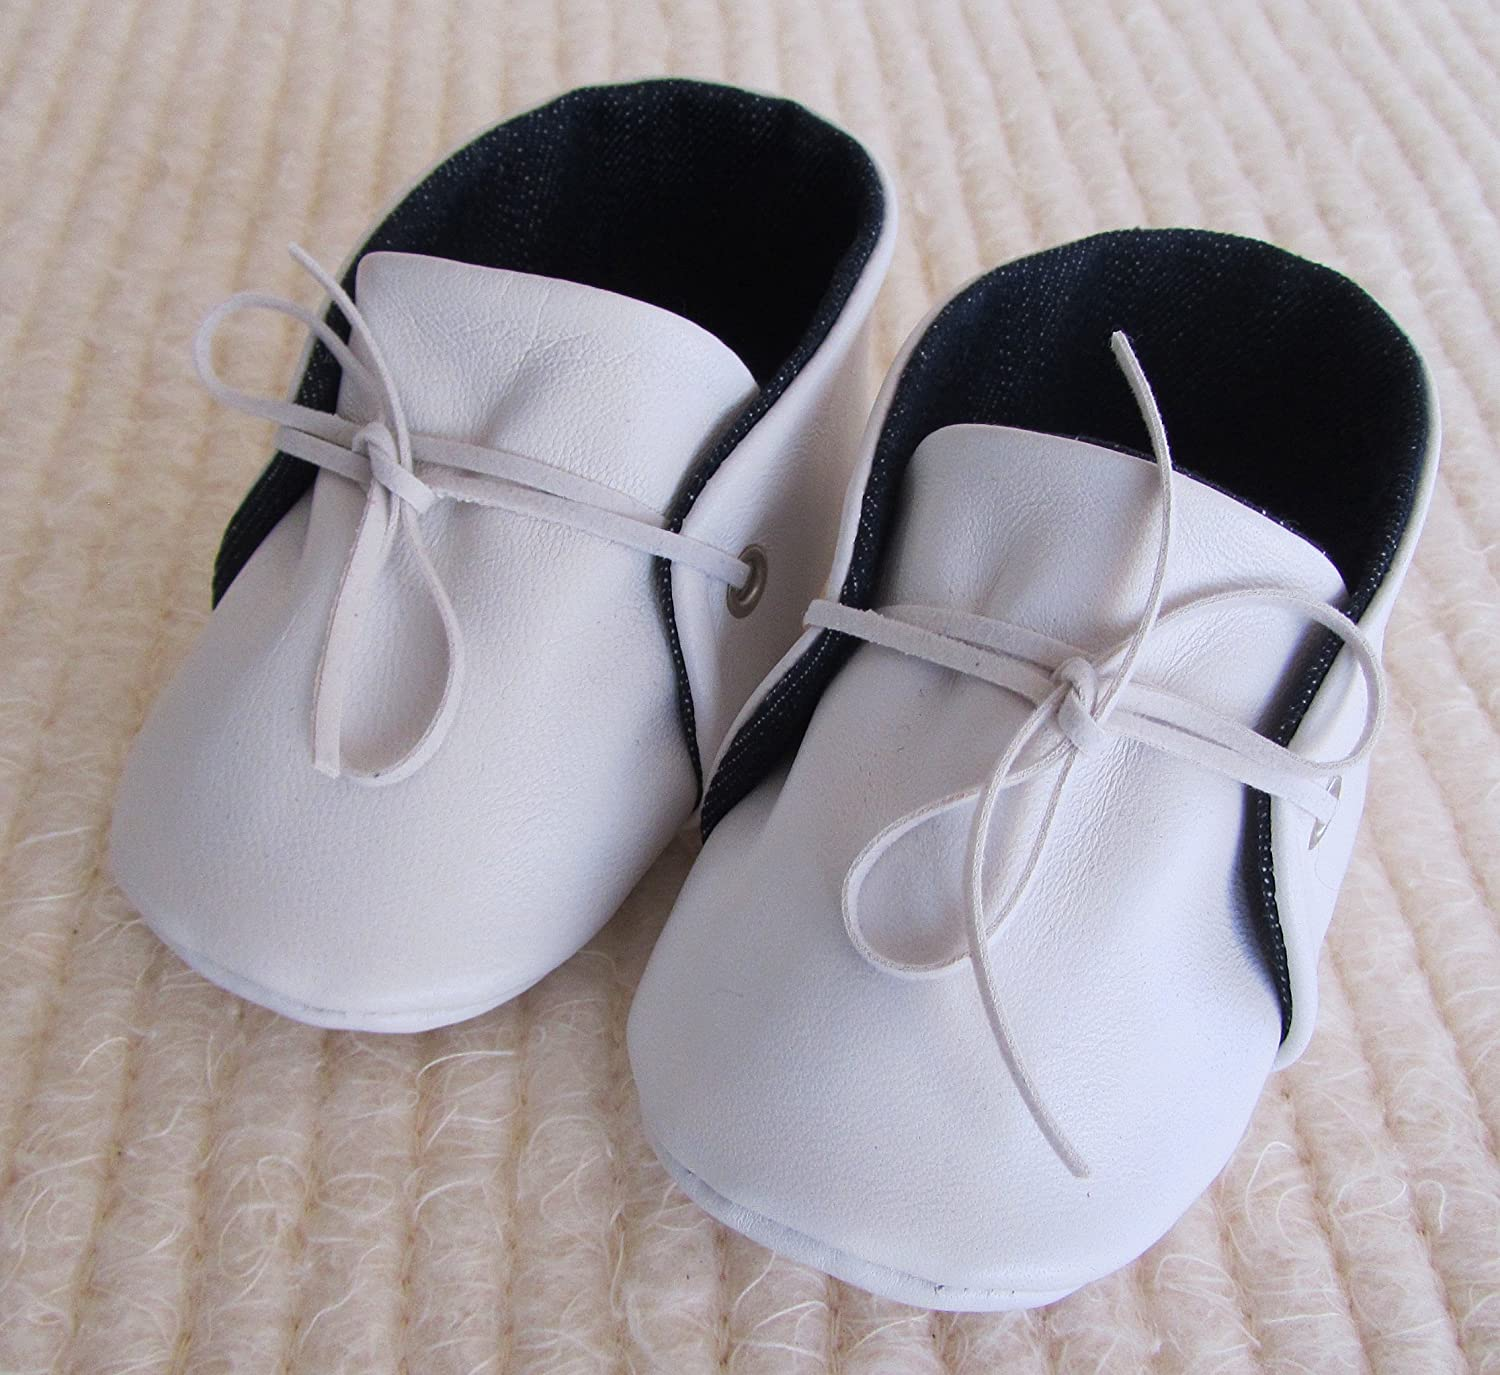 Baby Booties, Crib Shoes,Leather Baby